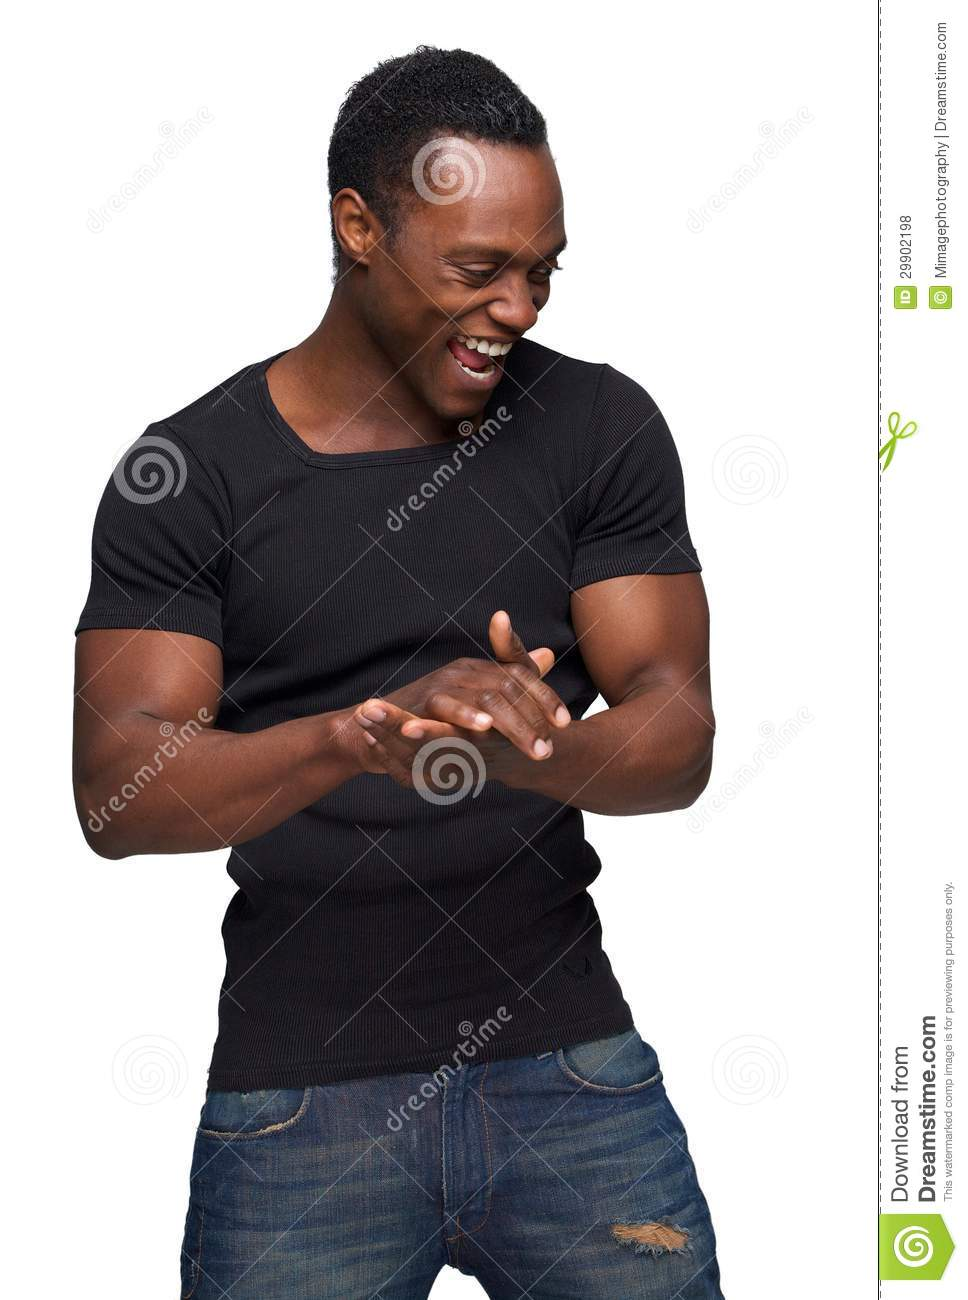 Happy African American Man with Hands Together